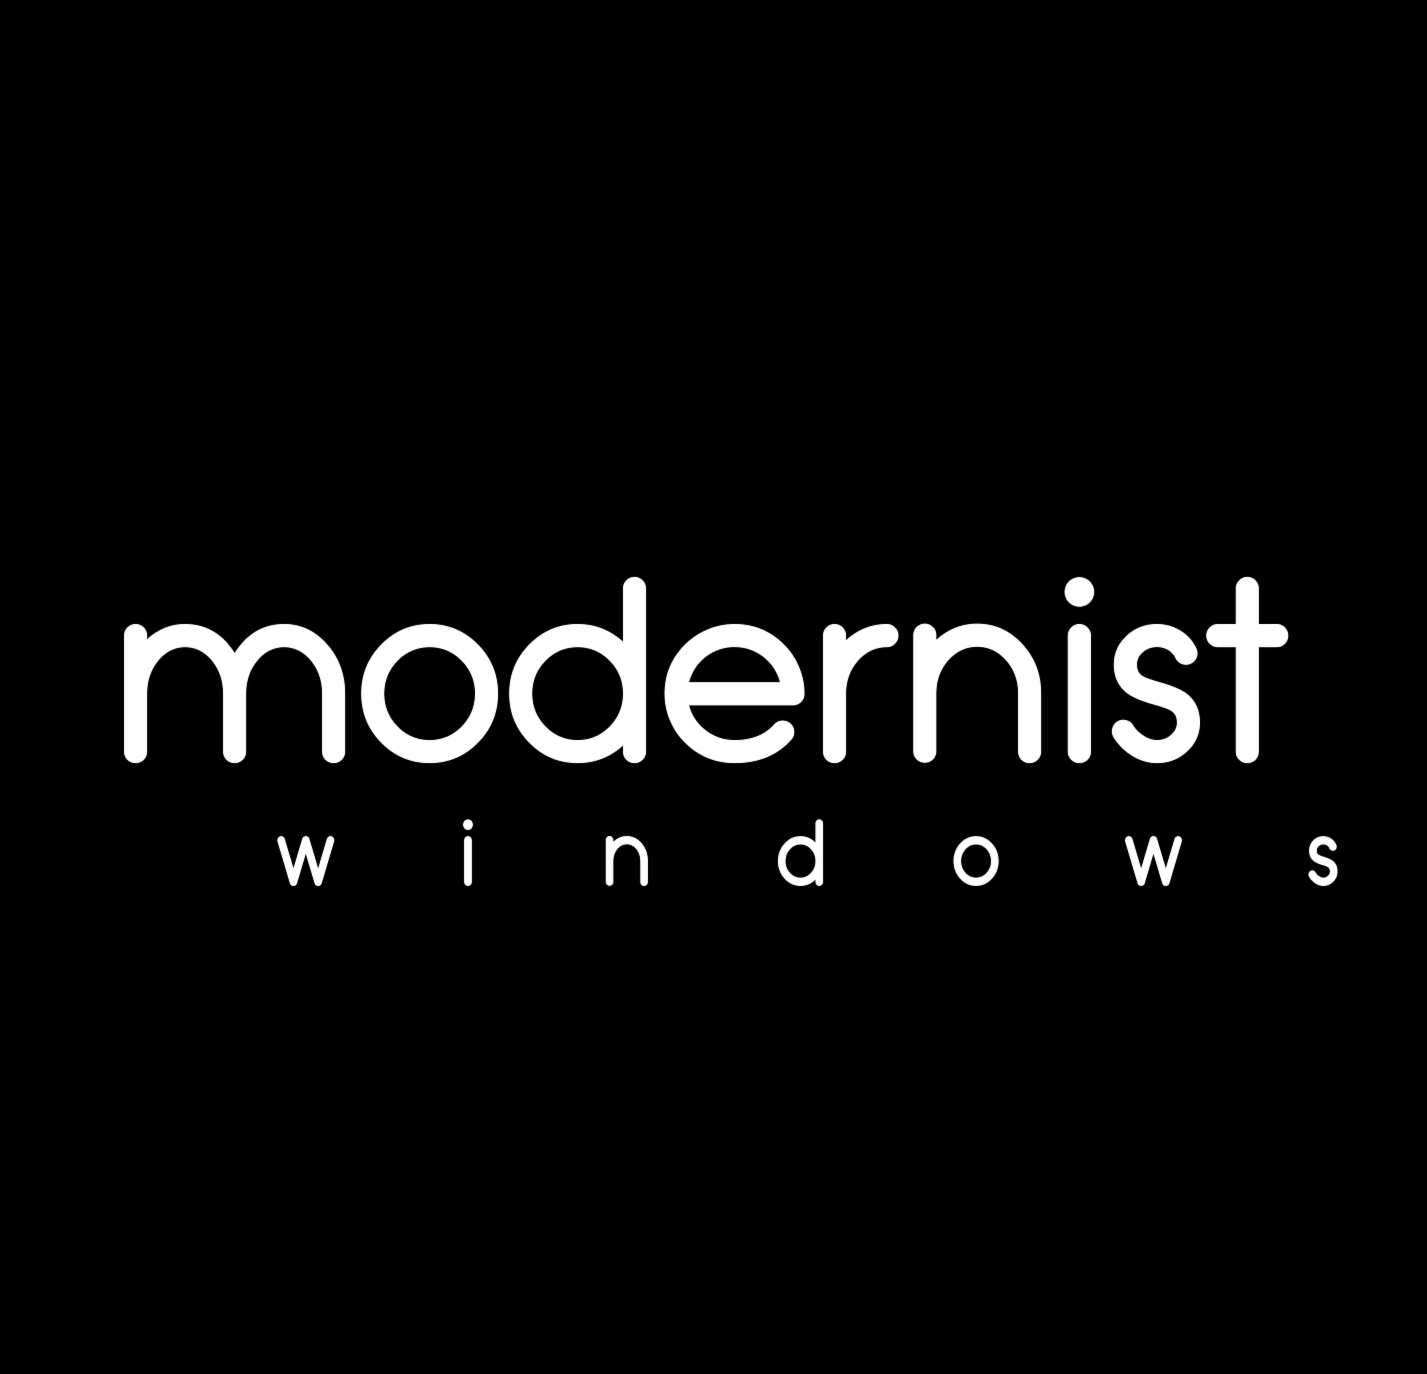 Modernist Windows